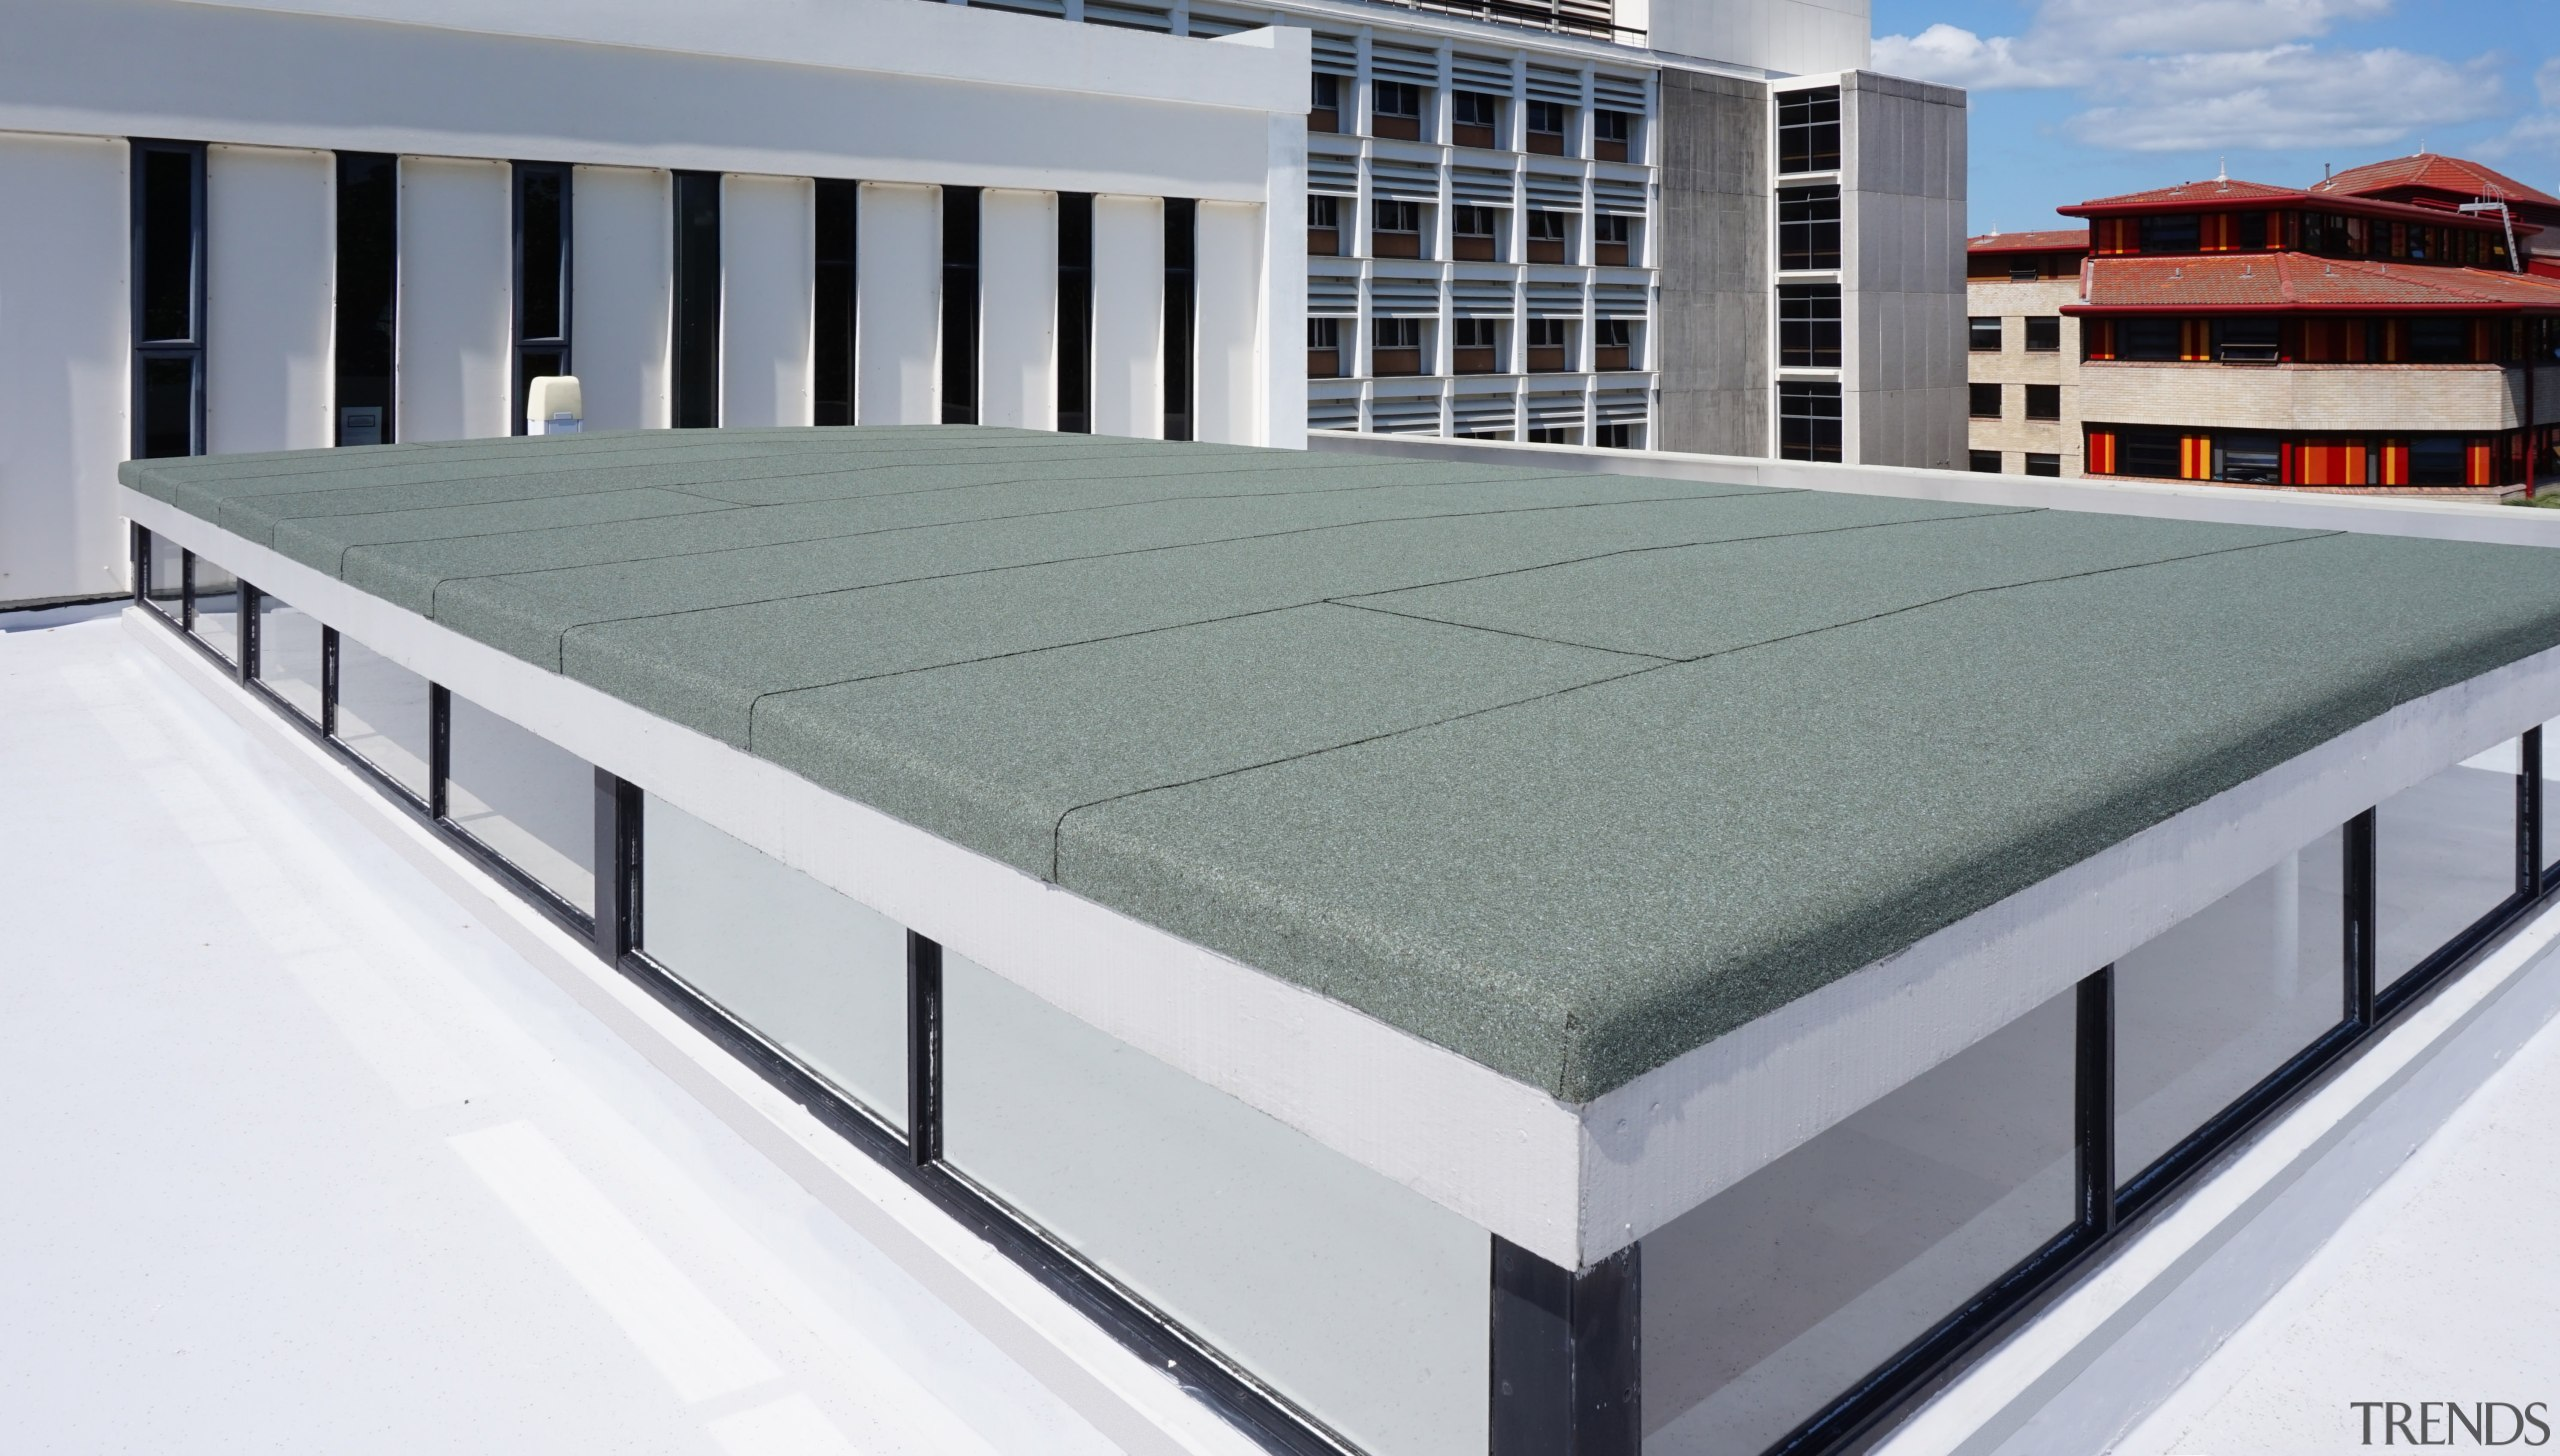 Only available in New Zealand from Neuchatel, SafeStick architecture, daylighting, furniture, product, product design, roof, structure, gray, white